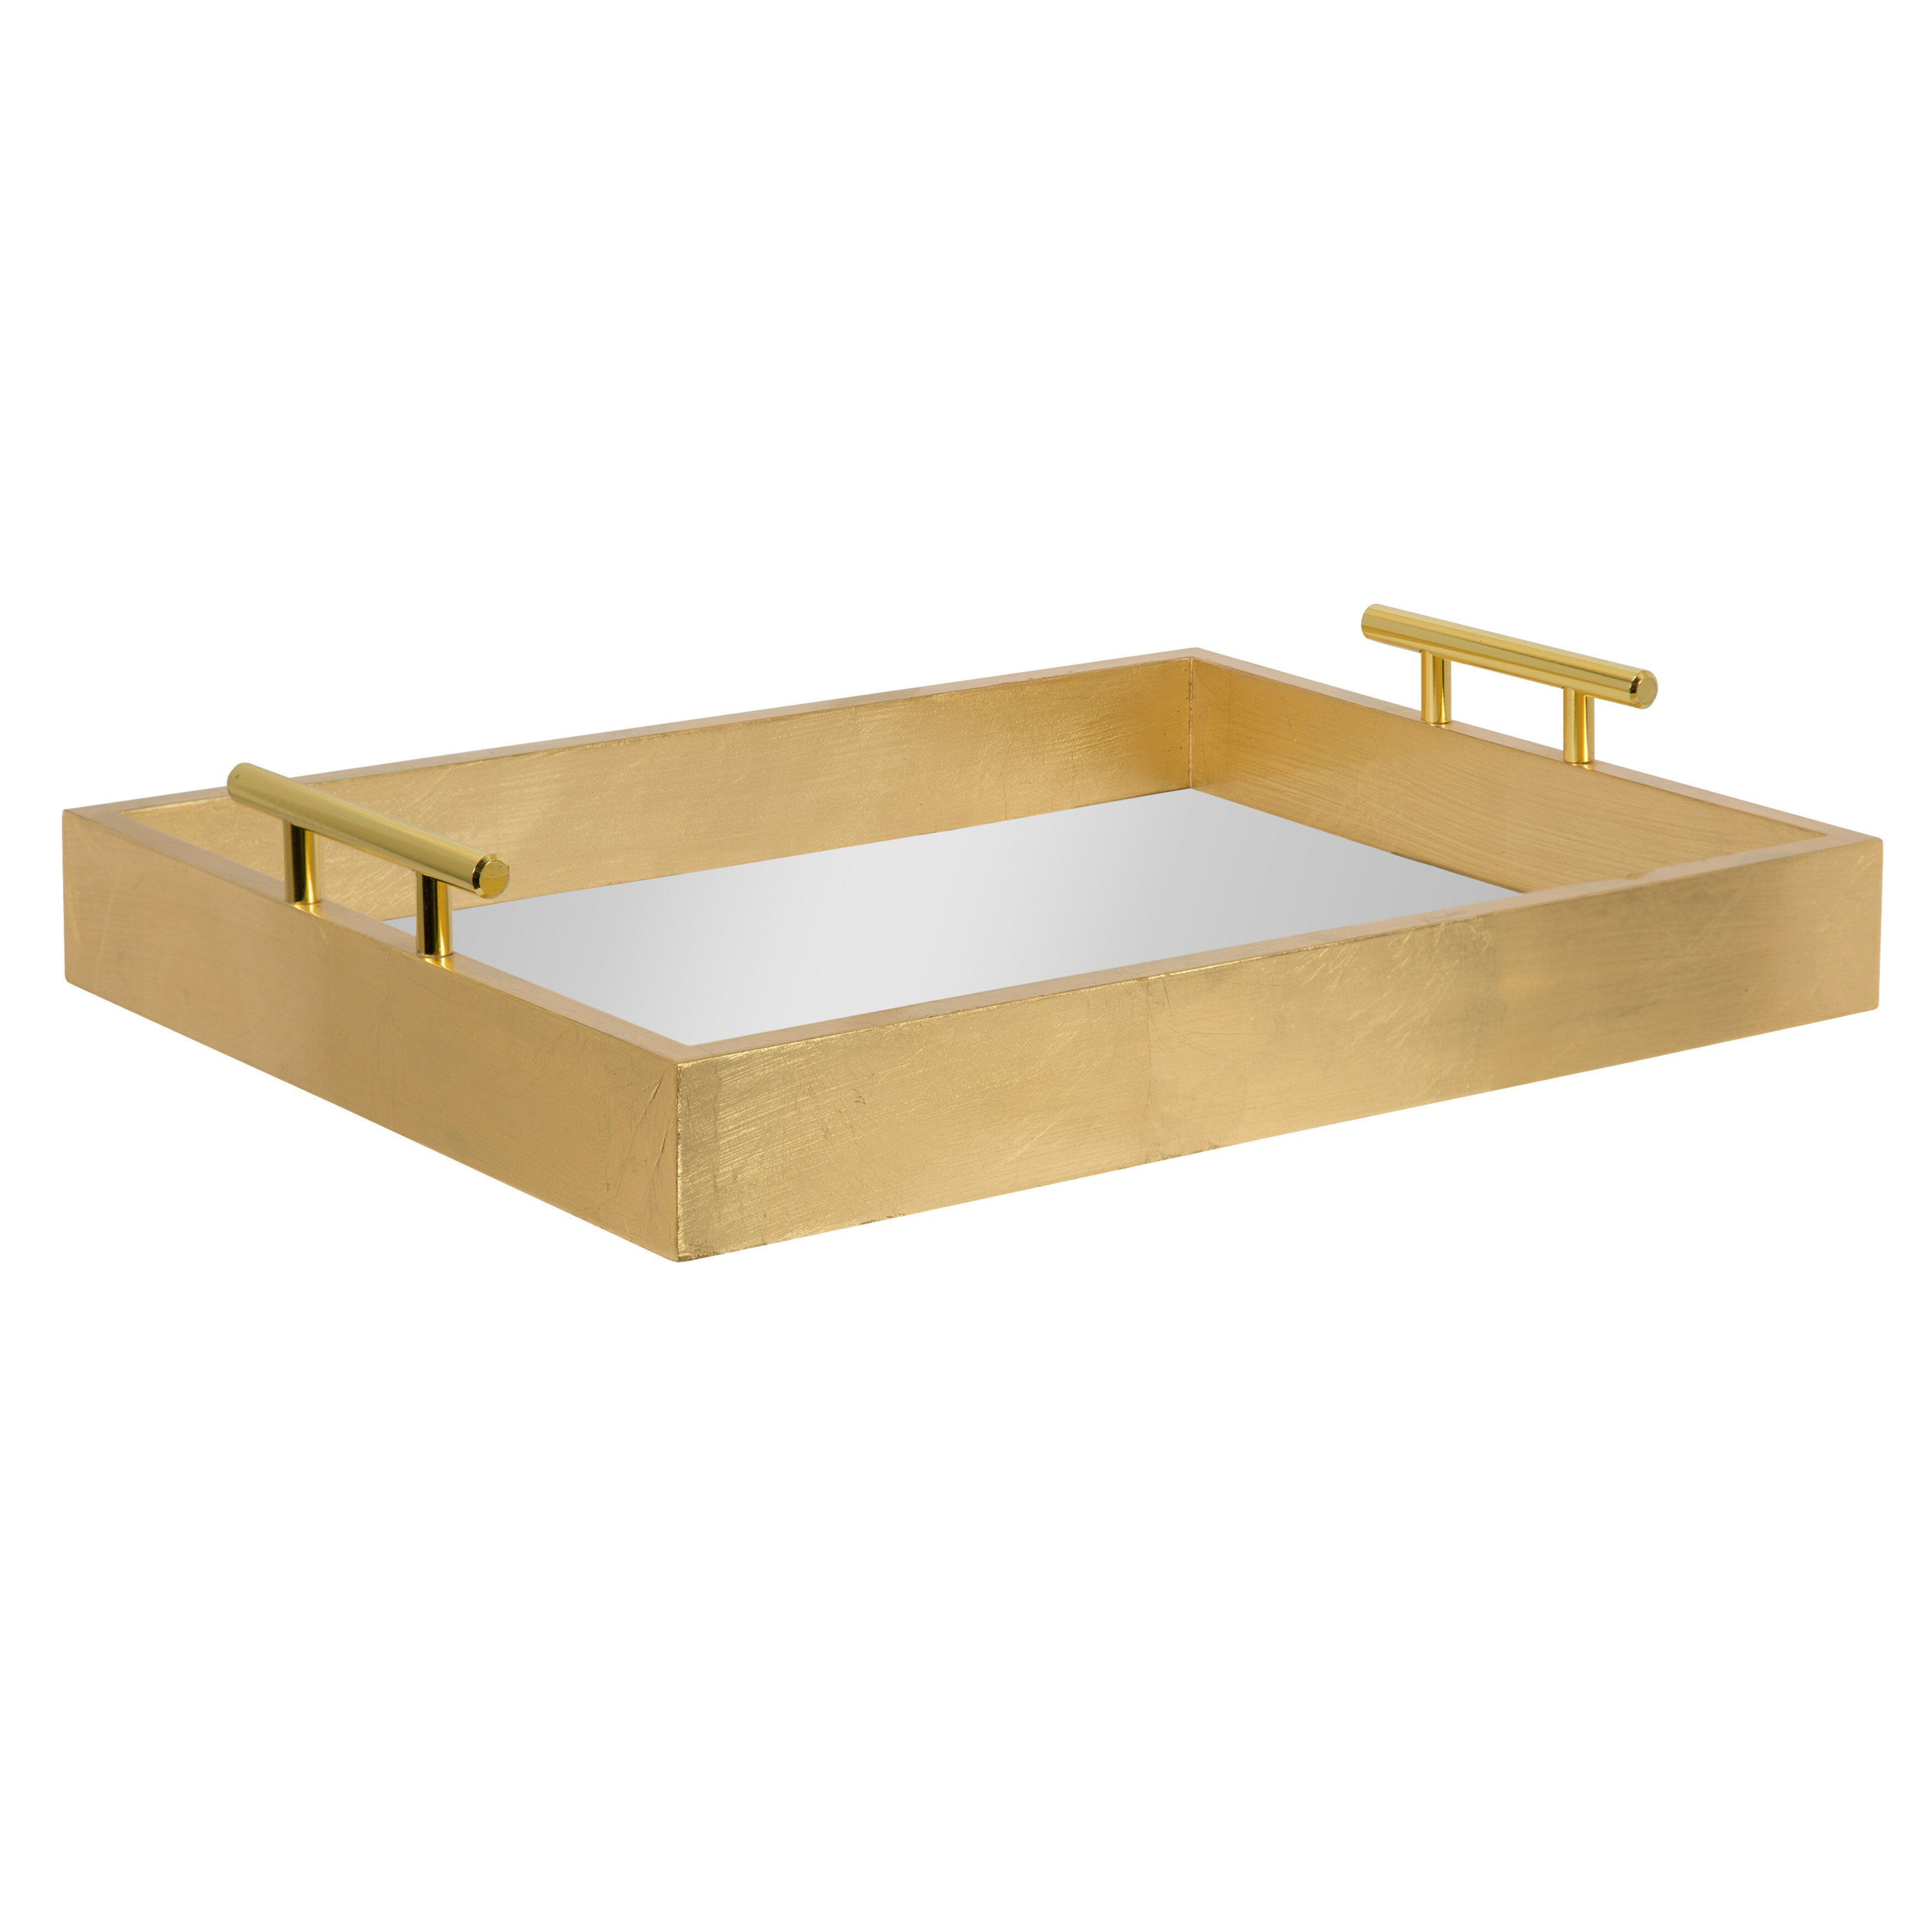 Gold Decorative Trays You Ll Love In 2021 Wayfair